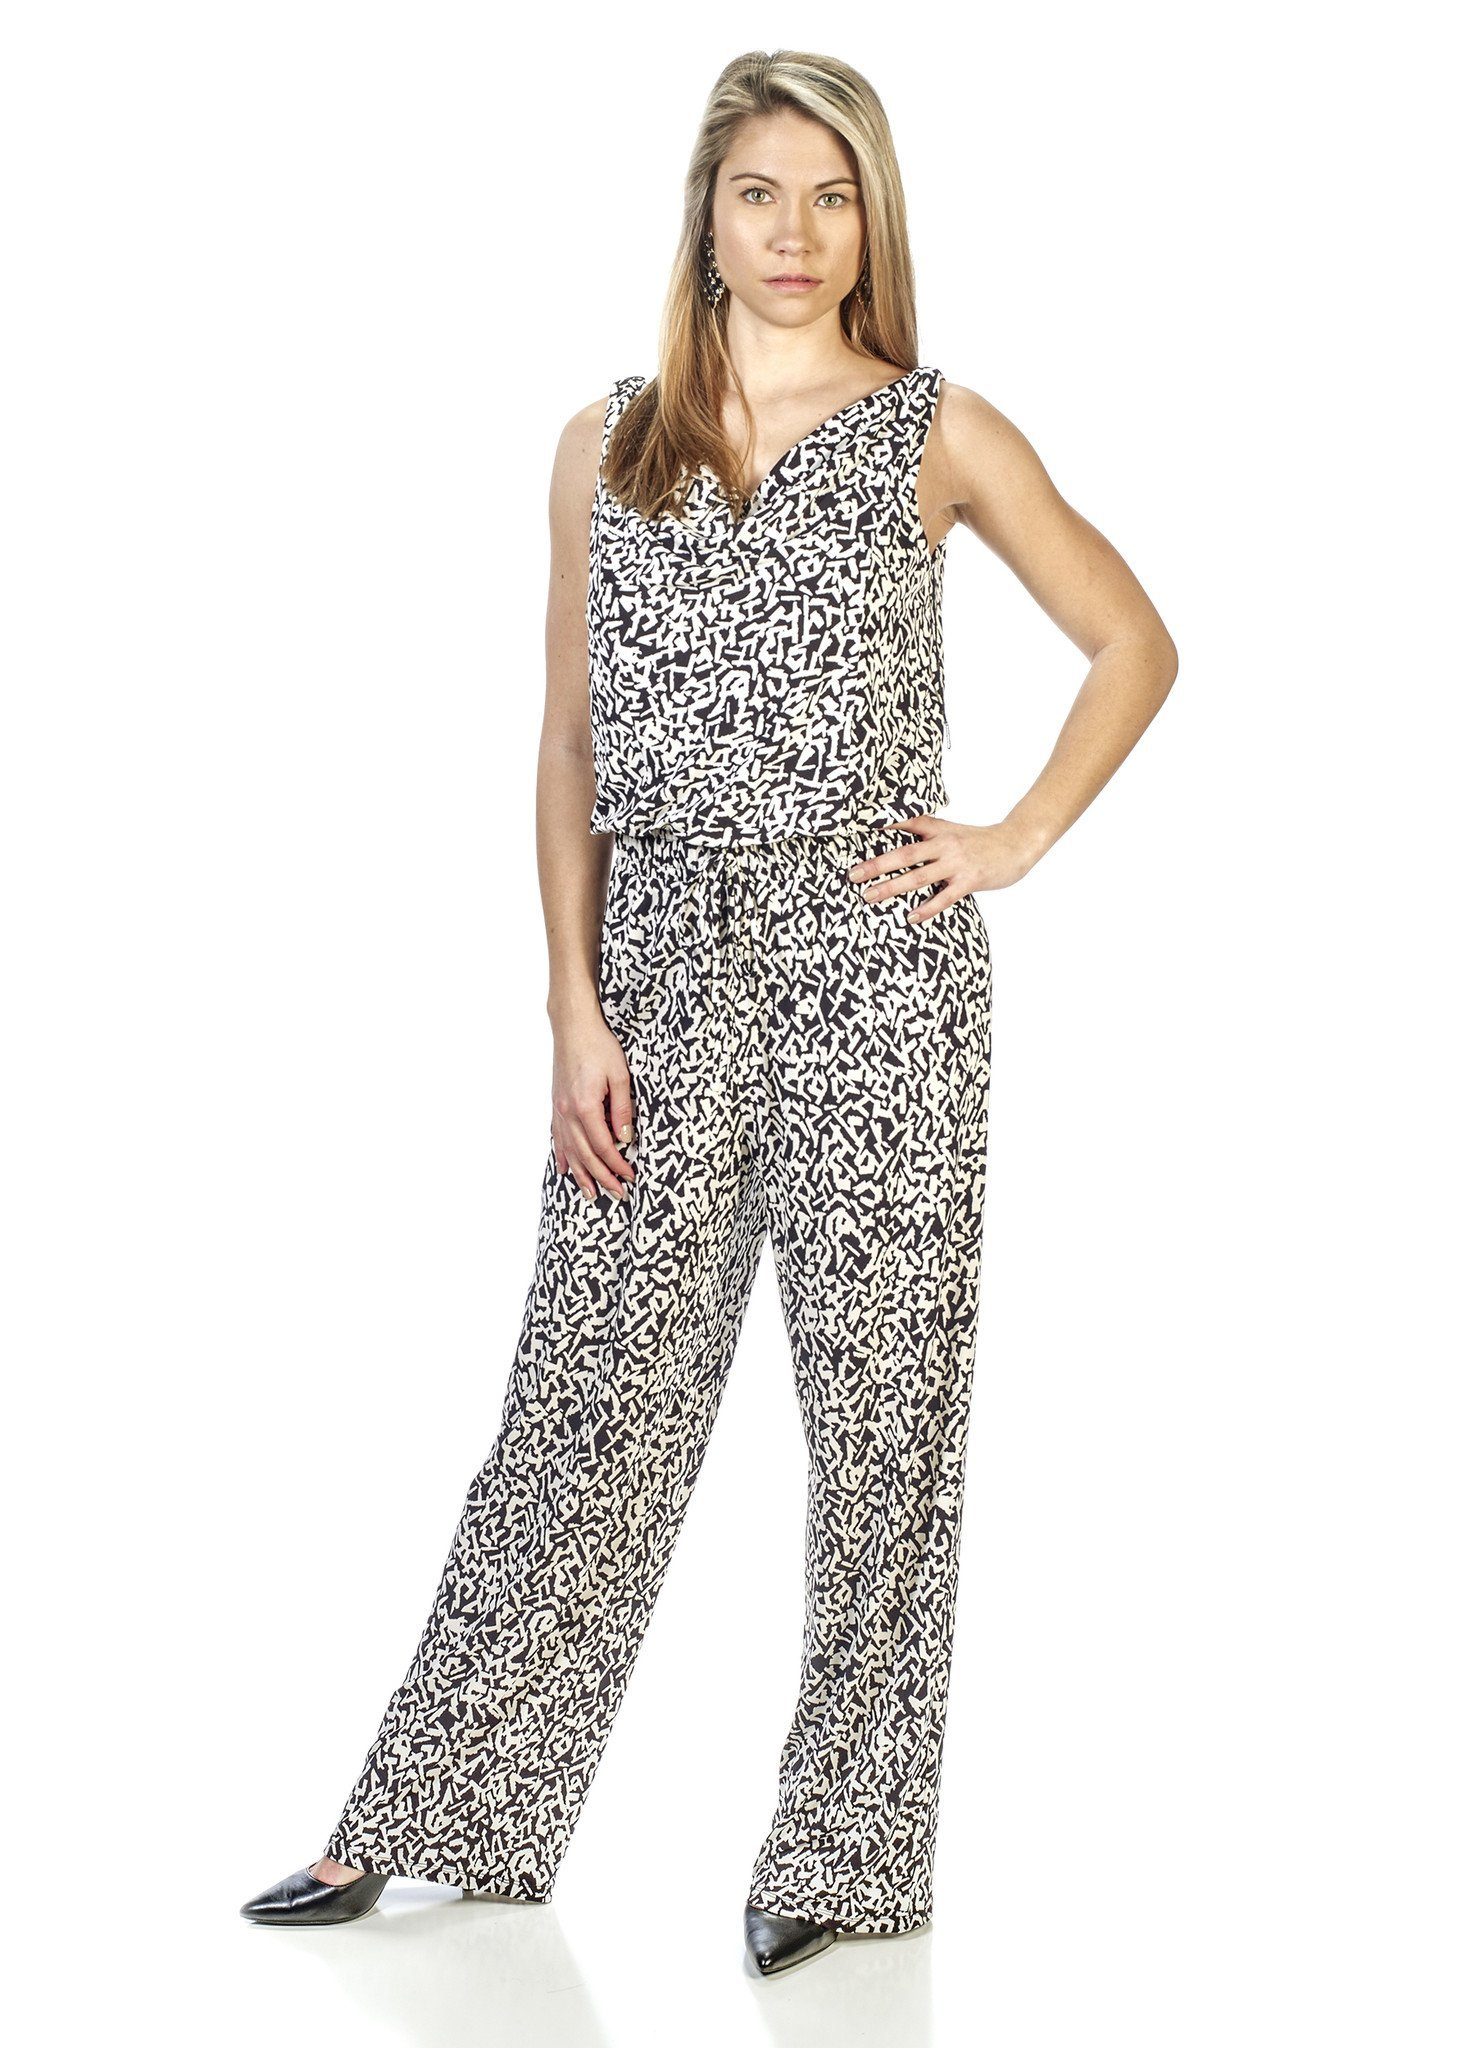 Choose From A Wide Selection Of Trendy Designer Jumpsuits For Women